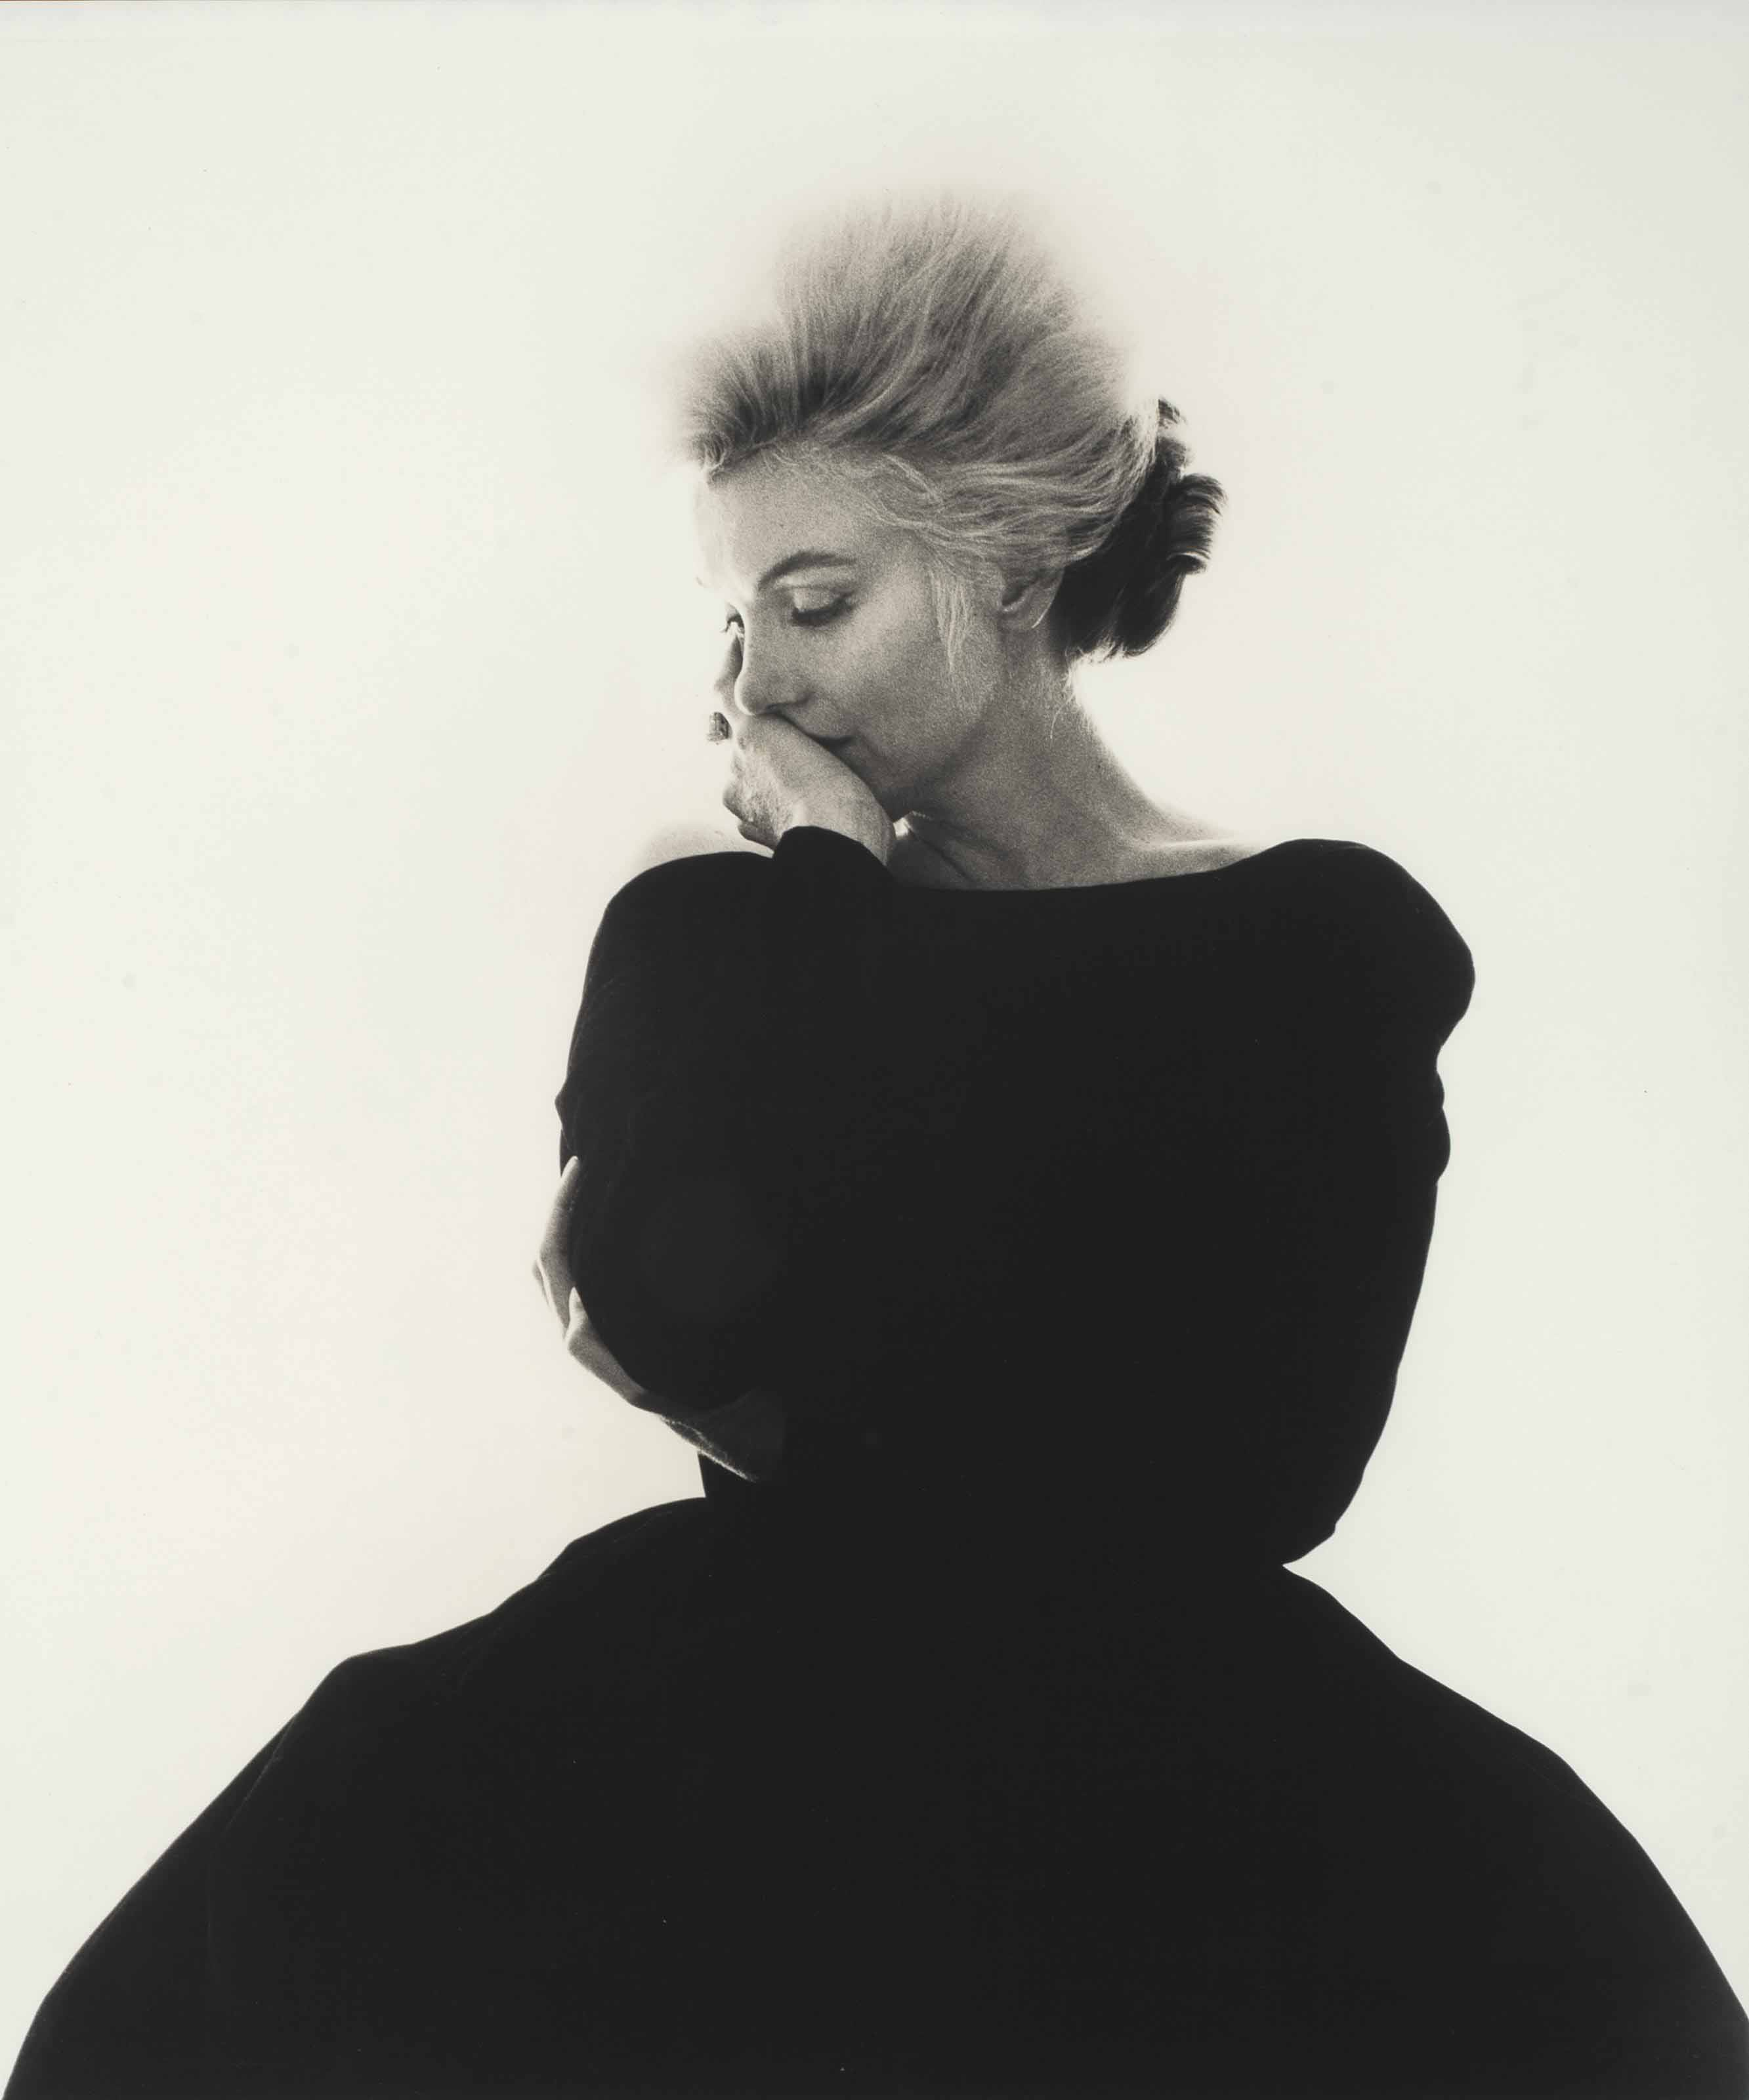 Marilyn in 'Vogue', 1962